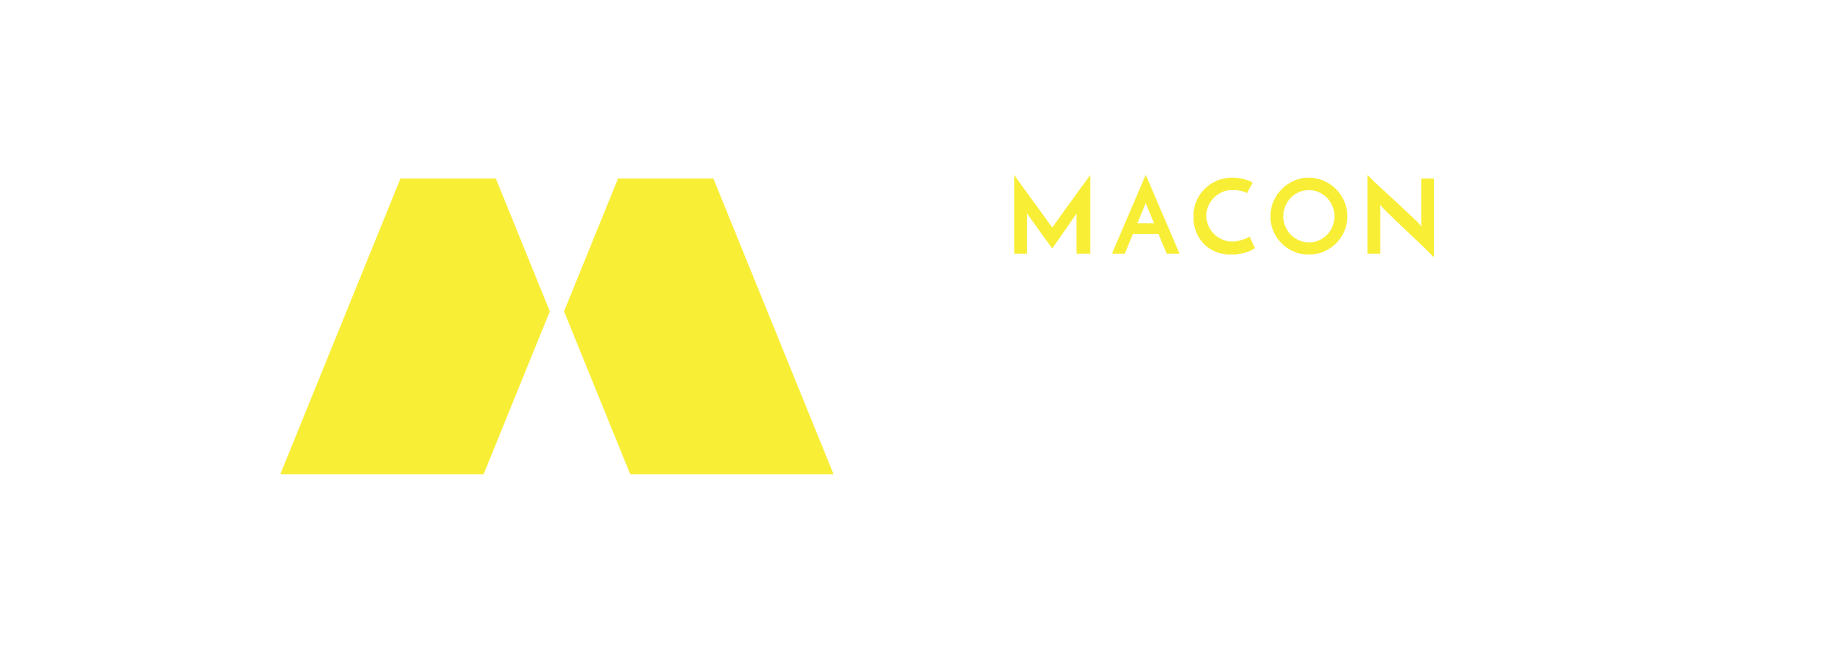 Macon Municipal Utilities